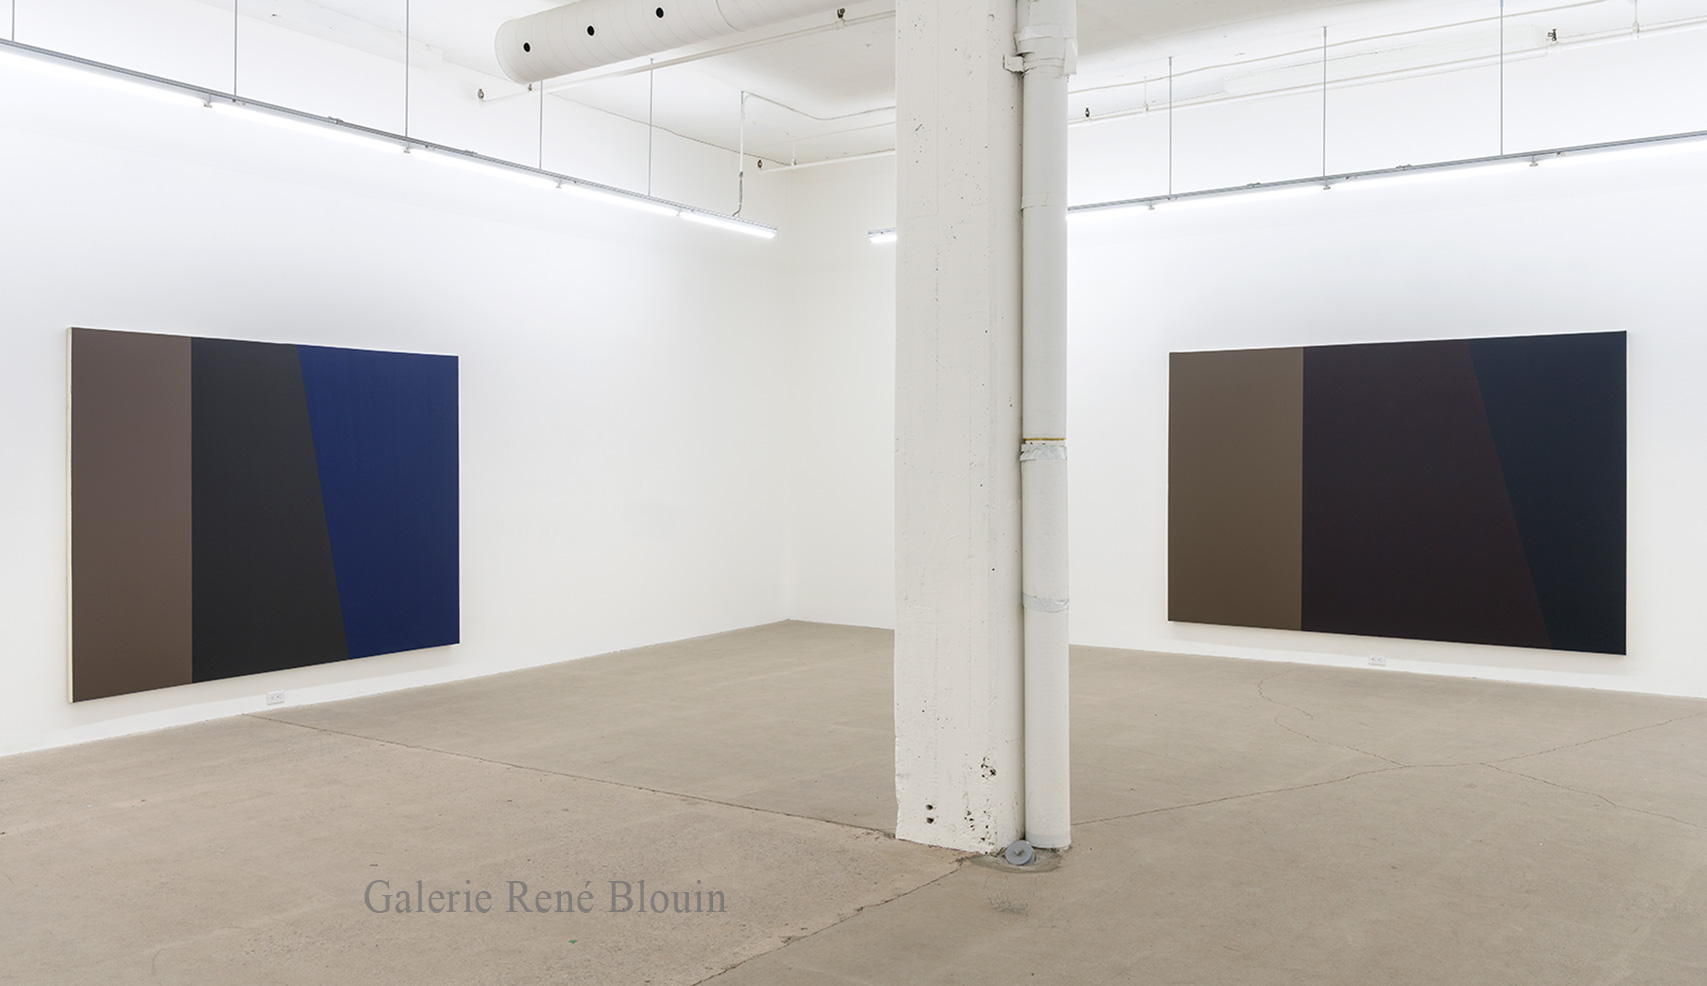 Vue d'installation, Exposition: Yves Gaucher - oeuvre 1986-1992 Photo : Guy L'Heureux